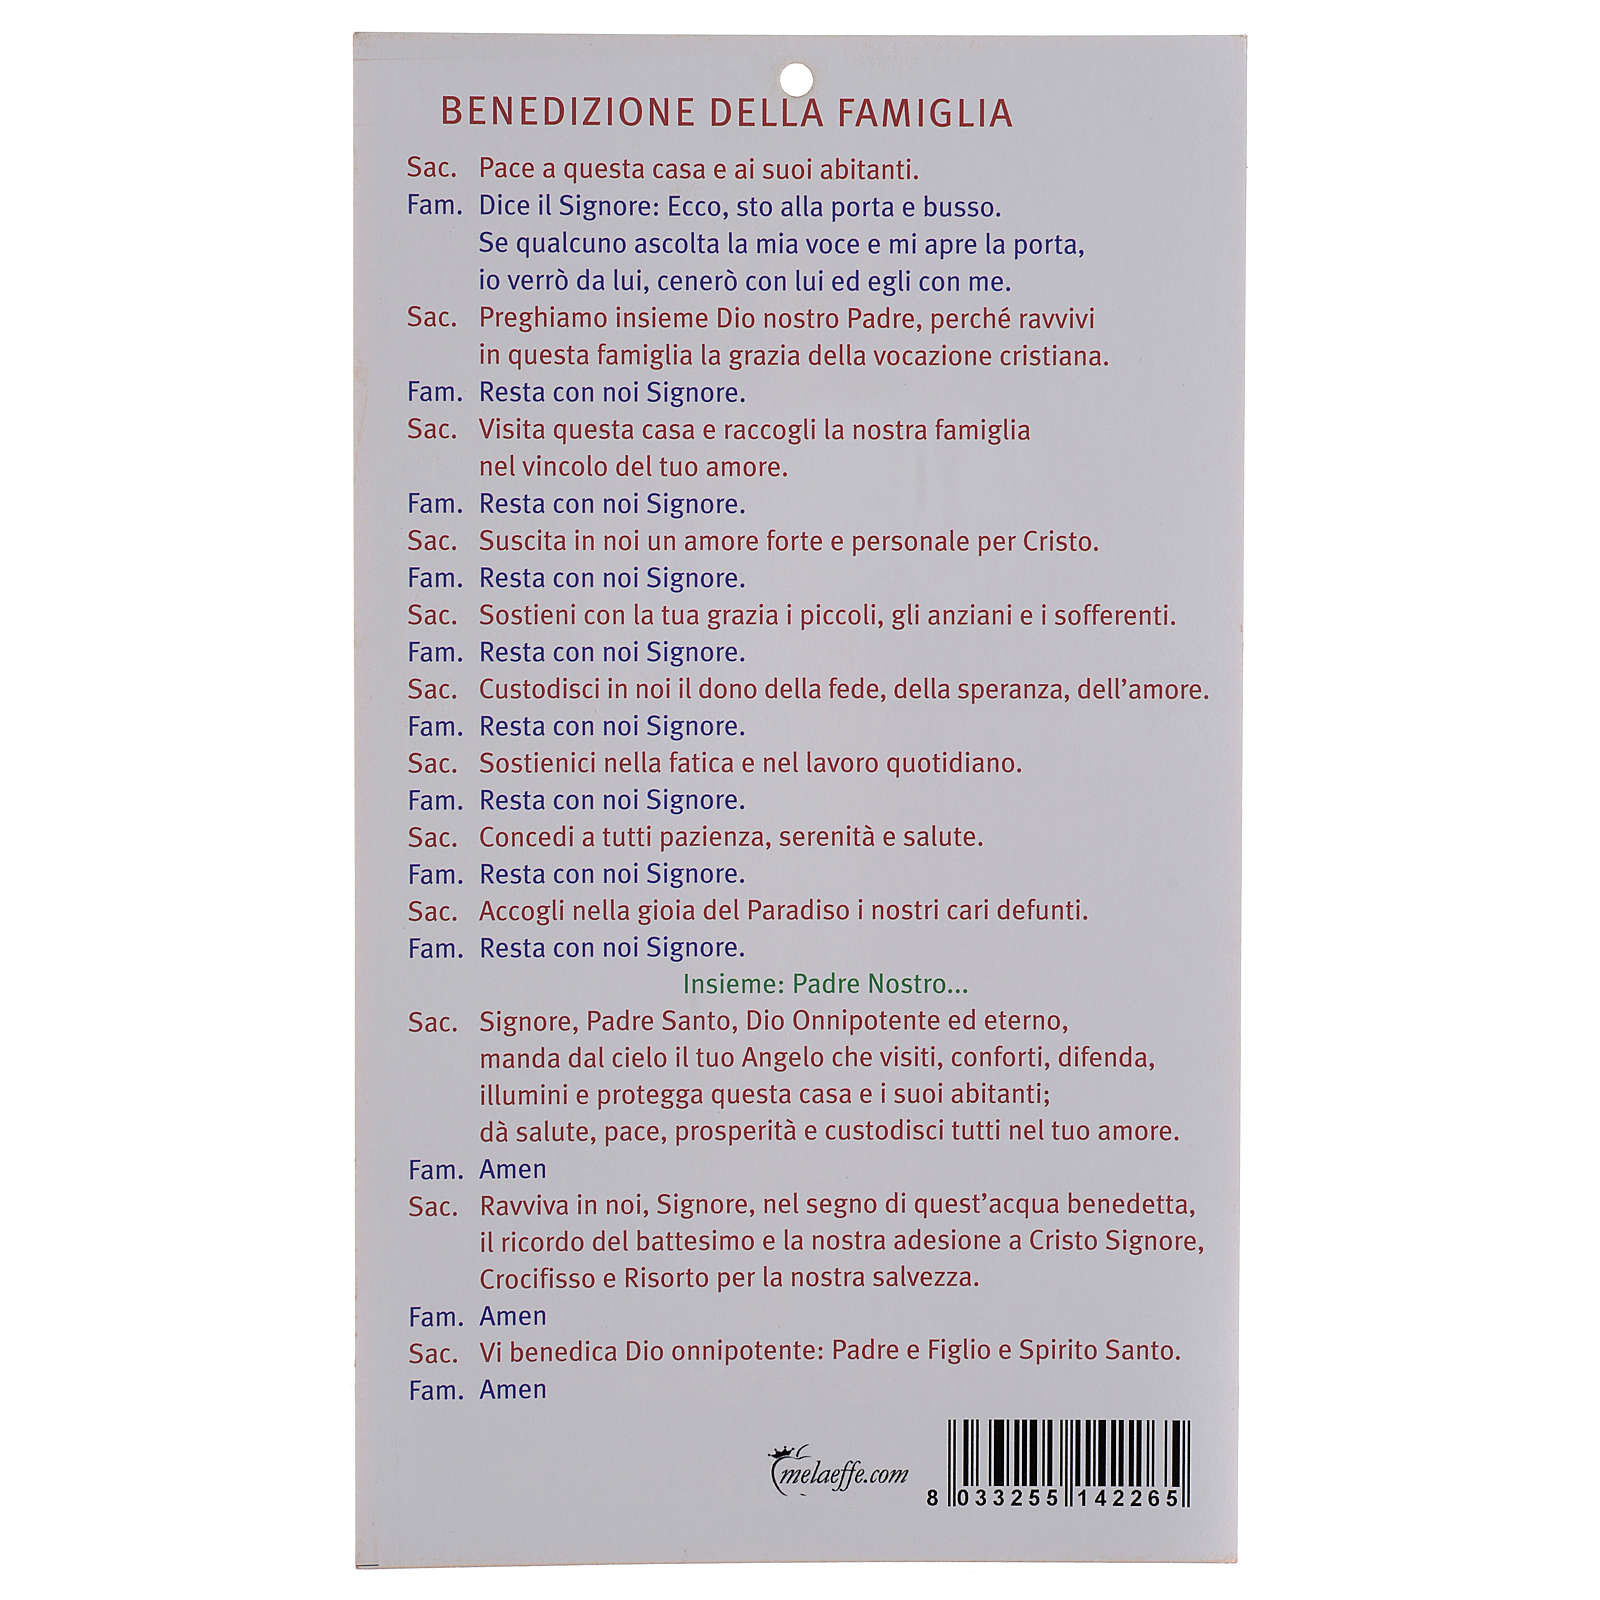 Blessings: Jesus the Compassionate parchment (100 pz.) in ITALIAN 3